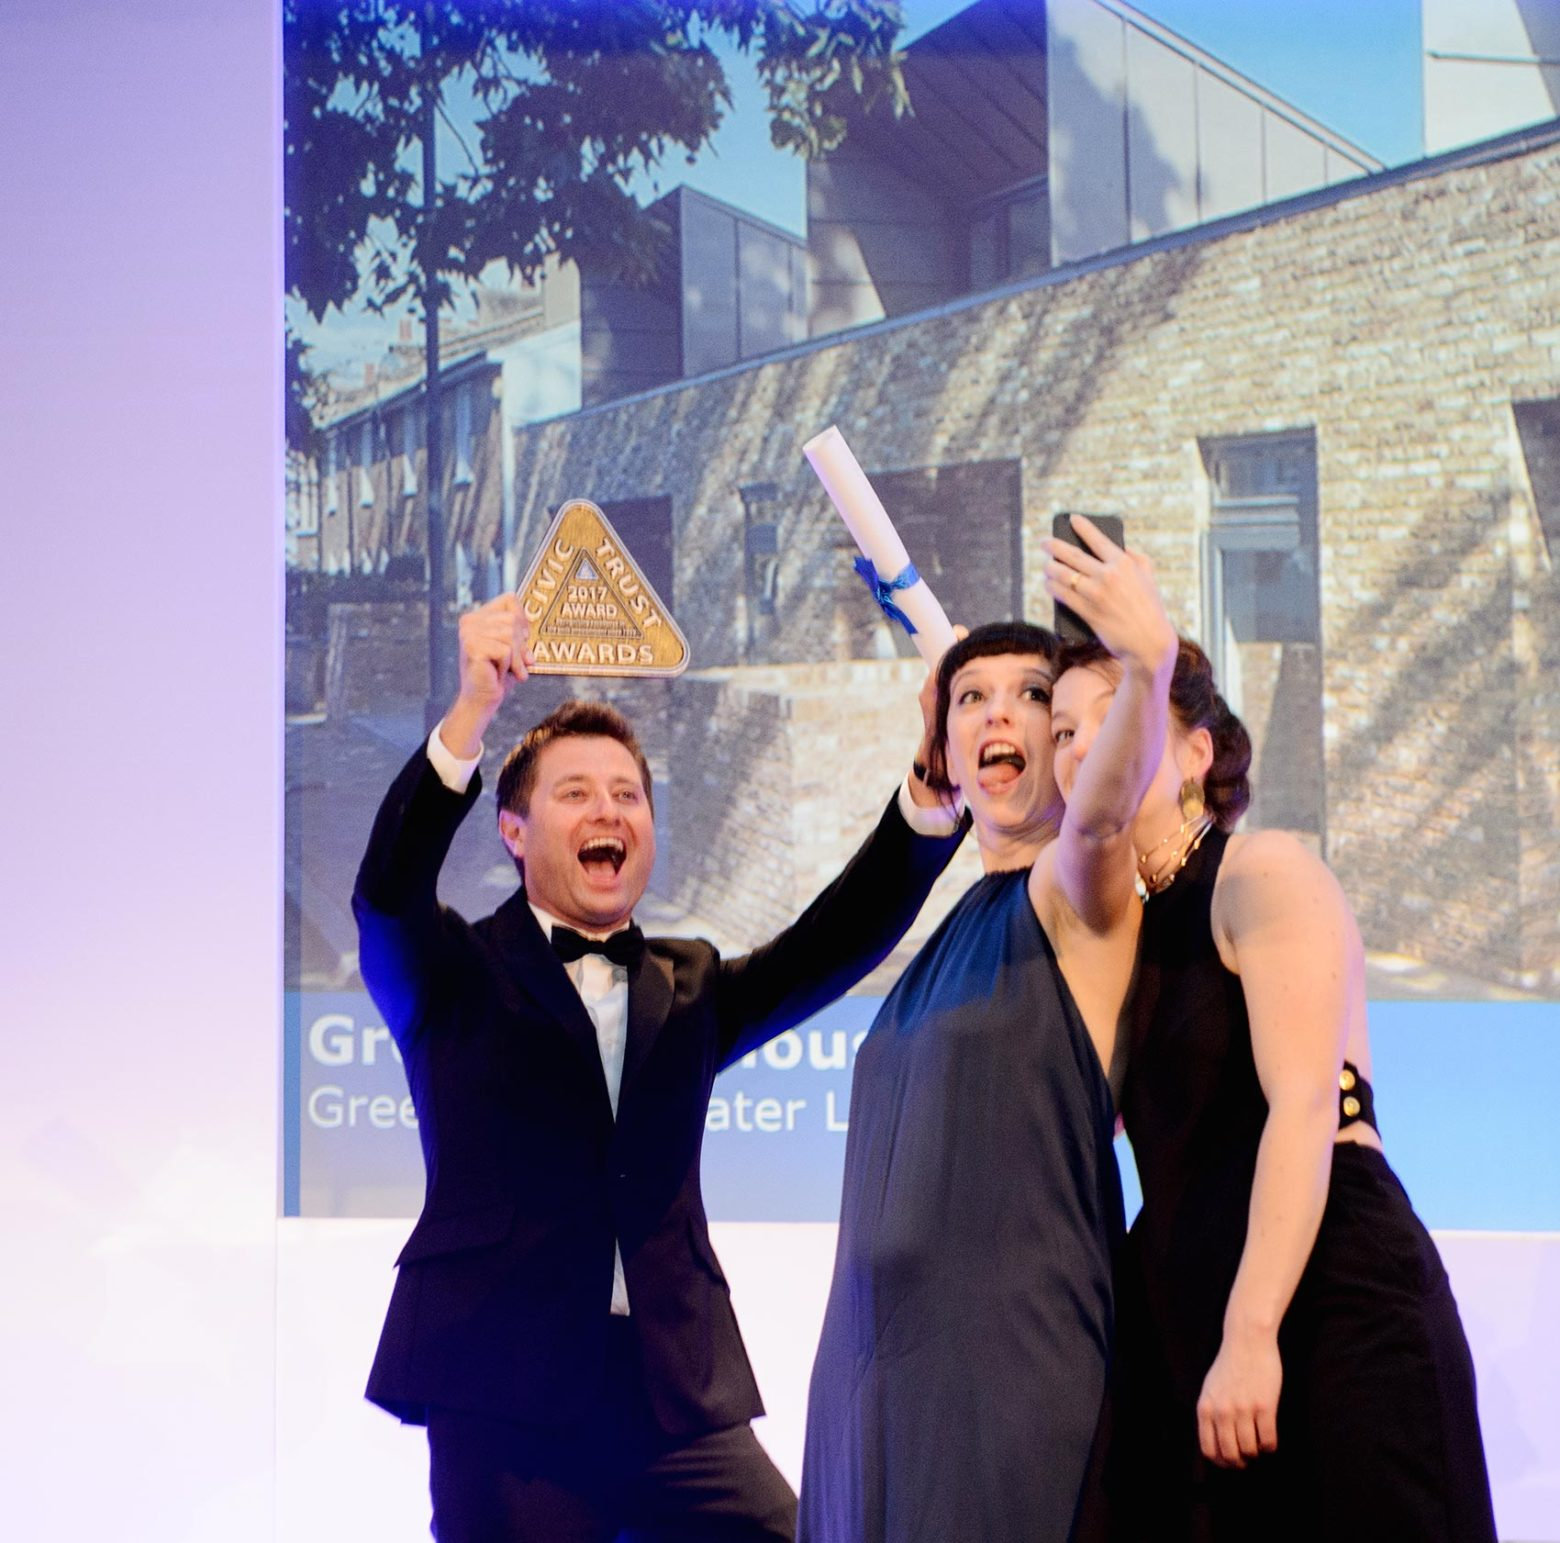 Greenwich Housing receives two Civic Trust Awards